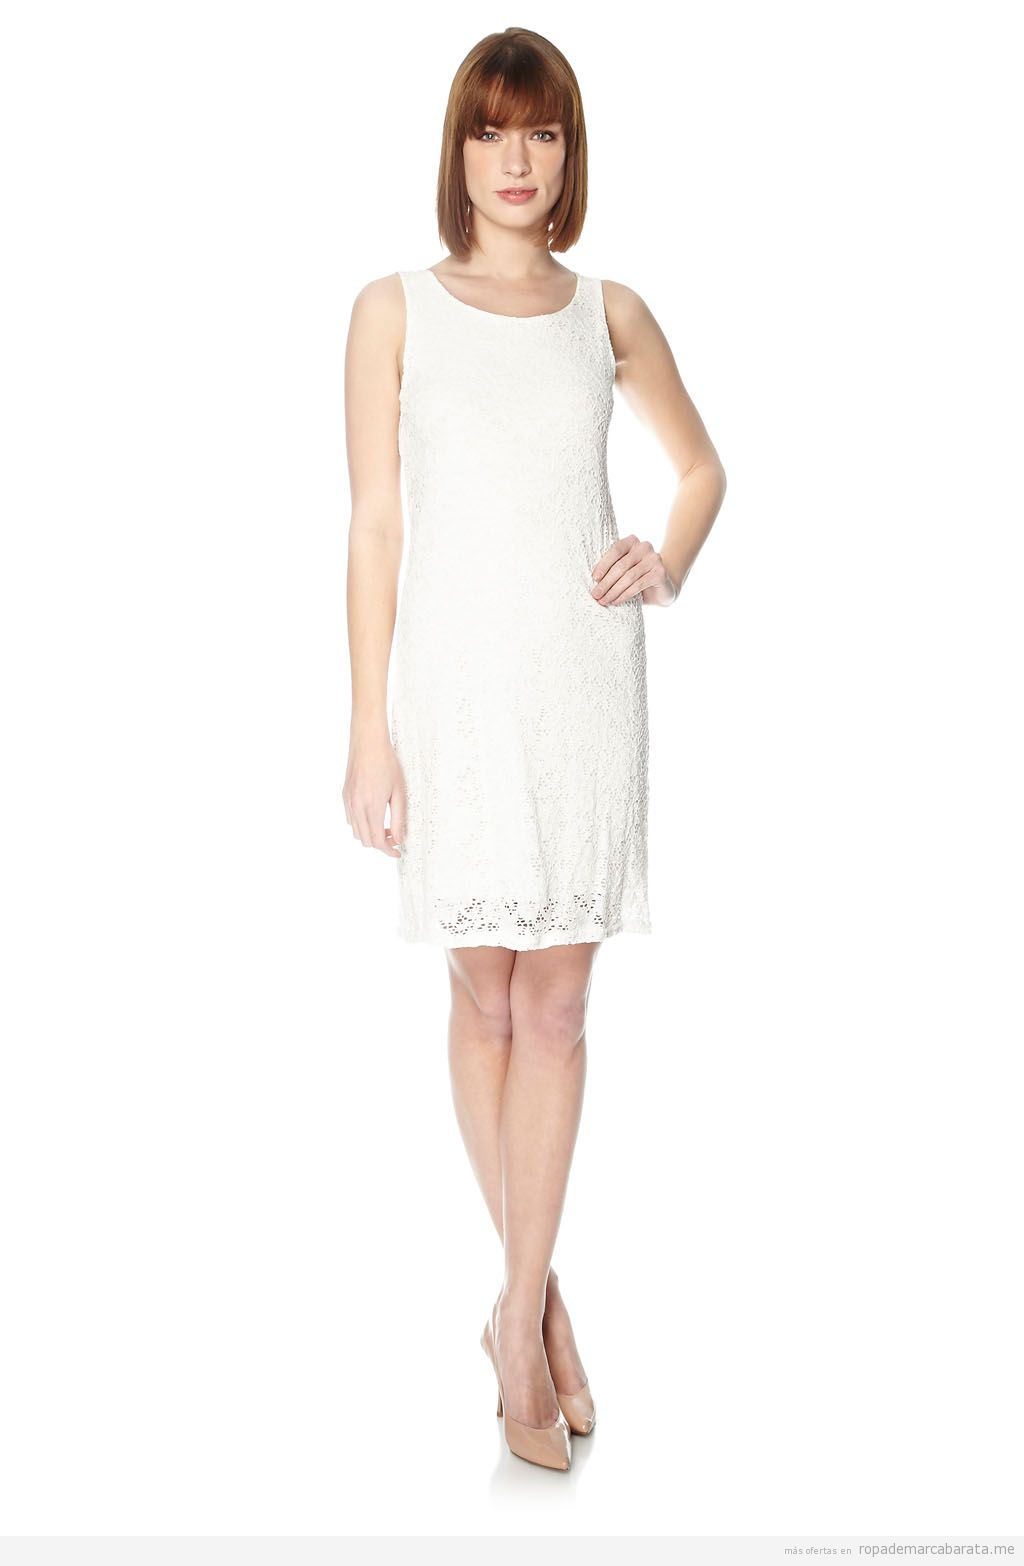 Ropa mujer marca Mado et les autres, outlet online